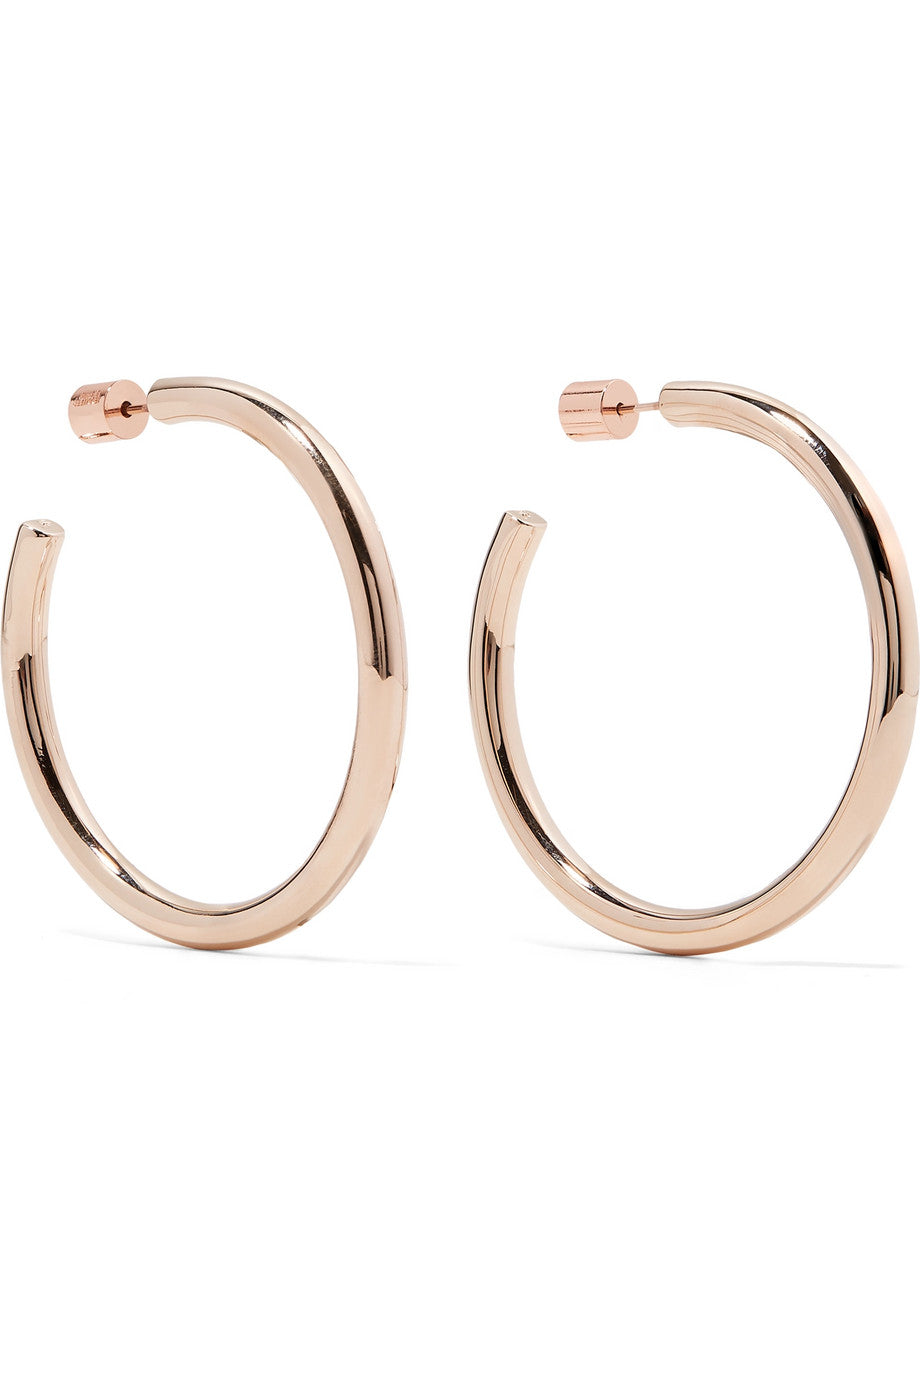 Jennifer Fisher - 'Baby lilly' rose-gold plated hoop earrings